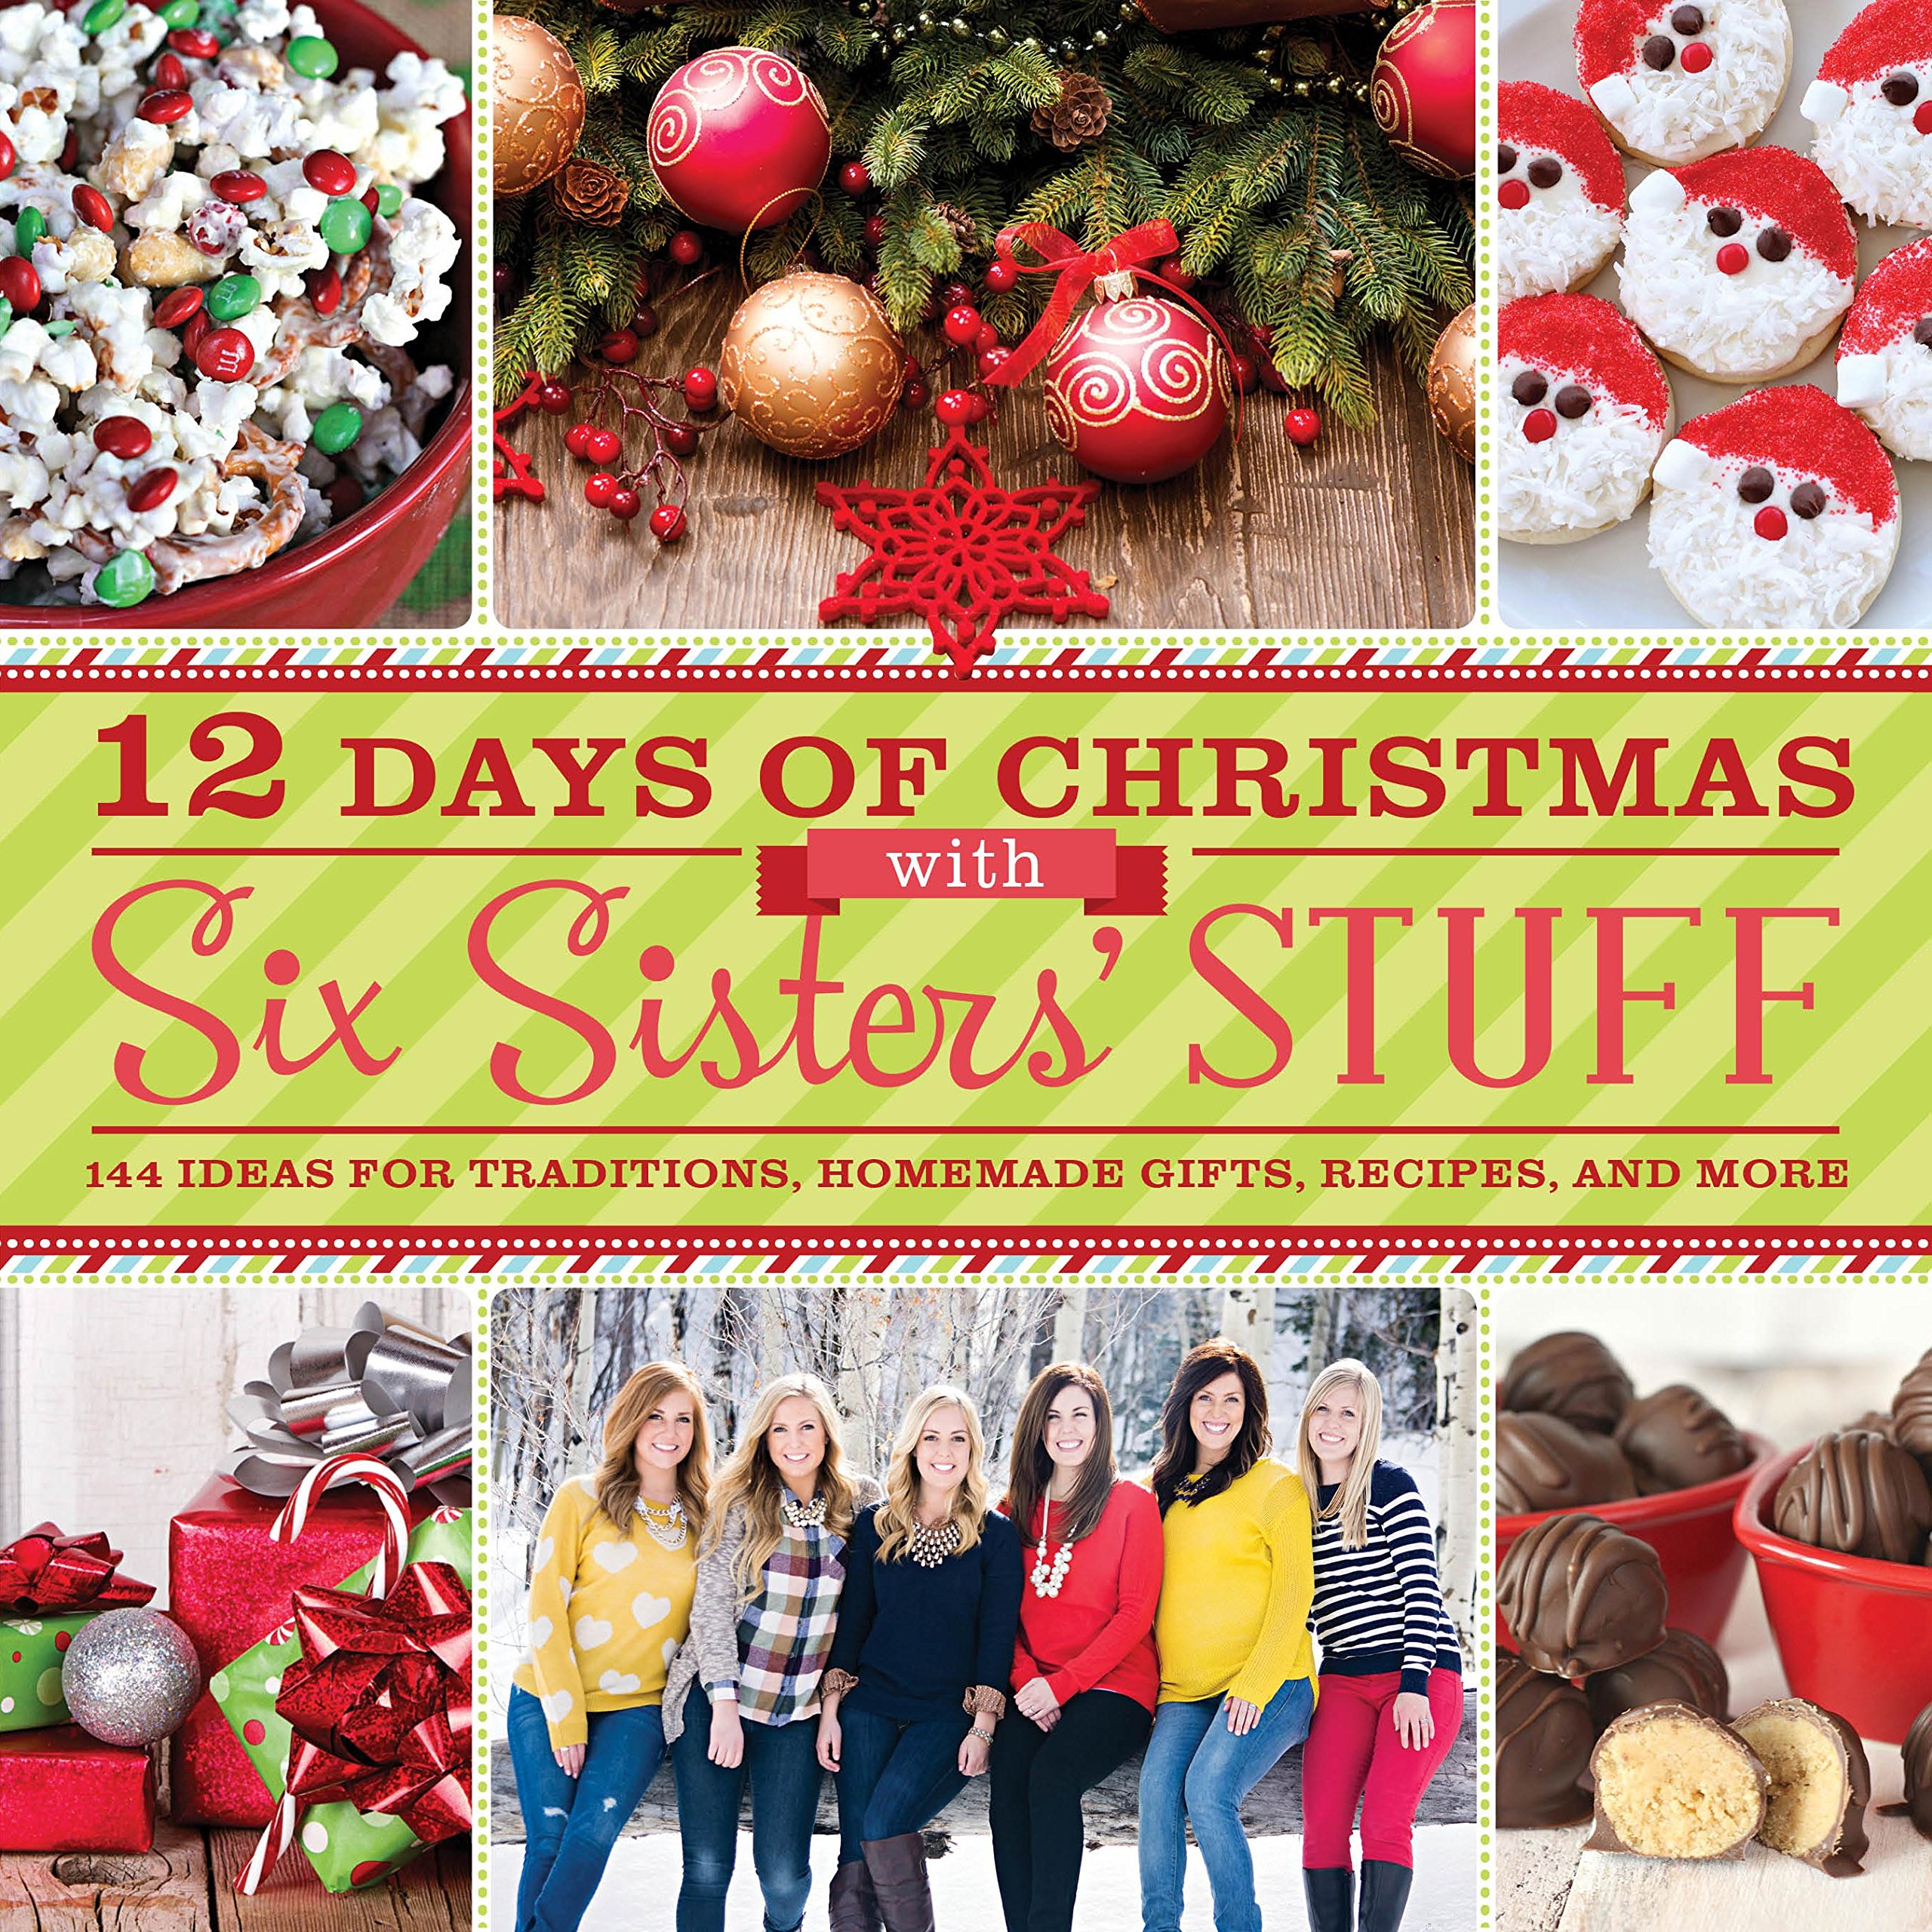 12 days of christmas with six sisters stuff recipes traditions homemade gifts and so much more six sisters stuff 0783027079357 amazoncom books